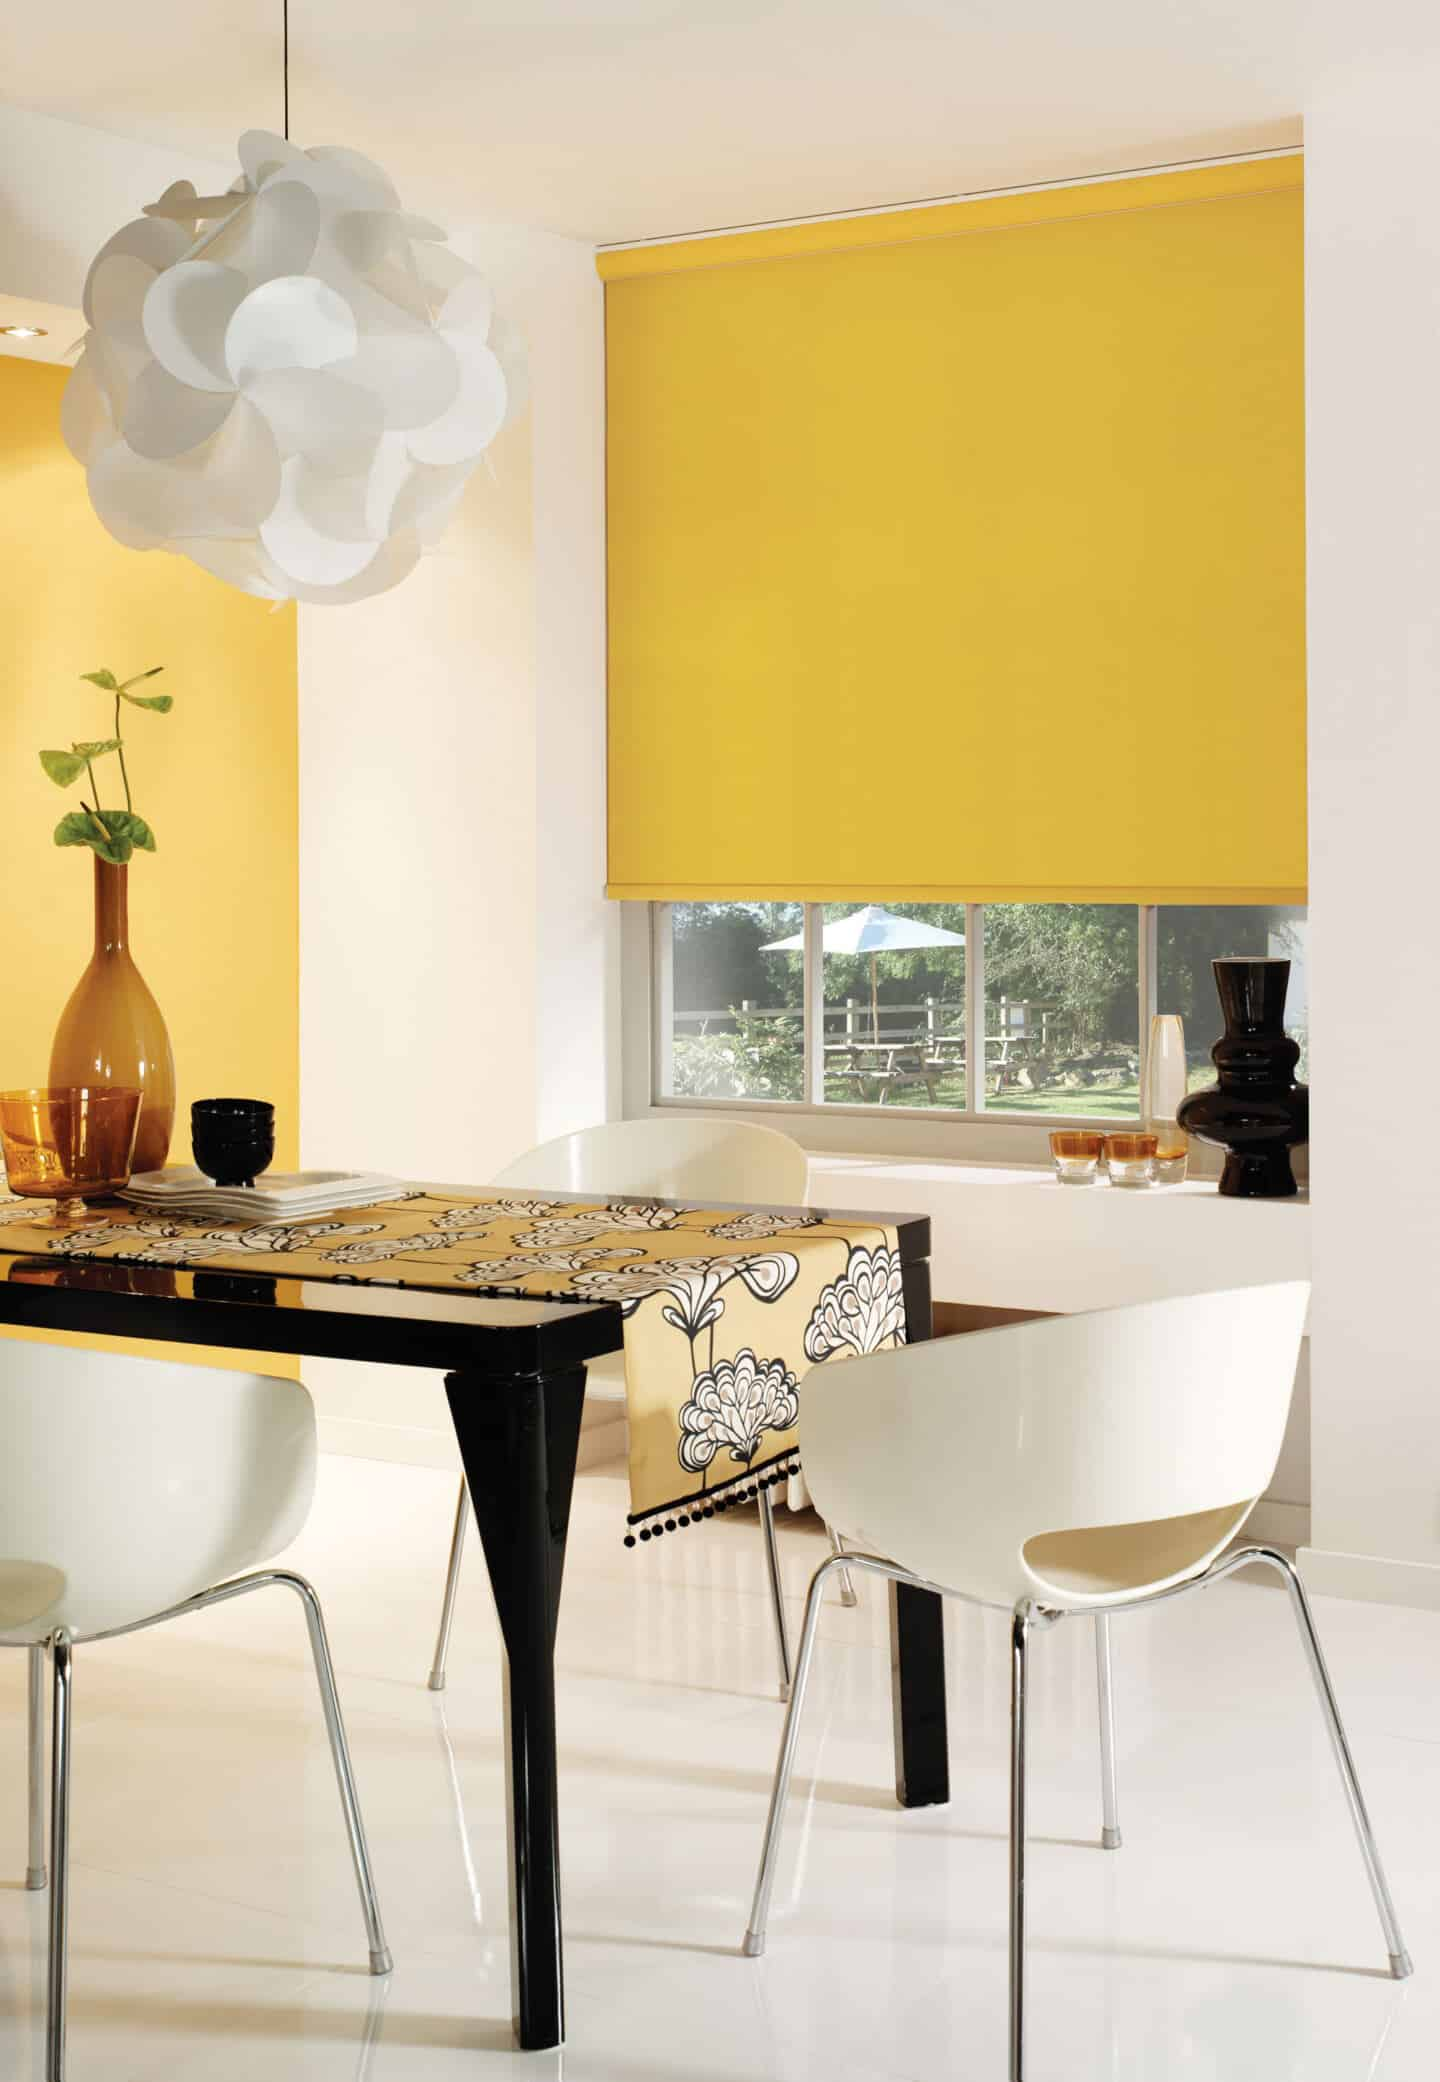 Pantone Colour of the Year 2021 - Illuminating. The colour psychology behind using yellow in interiors. Yellow blinds from English Blinds on a window behind a dining table